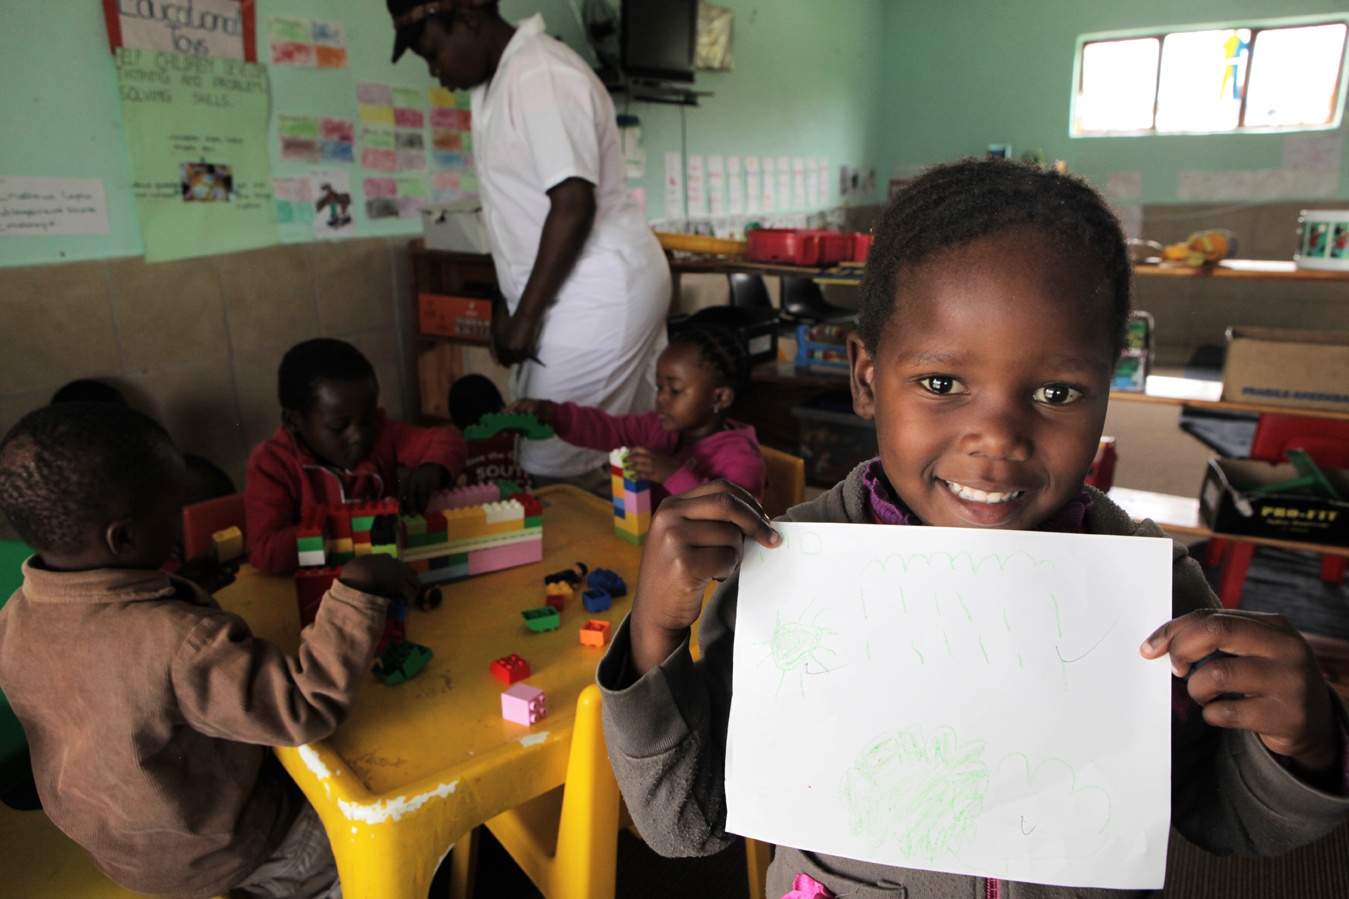 Mbalimba, 5, practices writing her name at the Save the Children Sizolomphakathi Early Childhood Development (ECD) Centre in Mpumalanga Province. Many children in the area live in single-parent households, either due to separated parents, a deceased parent or an absent father. Originally an ECD centre play bus until 2009, Save the Children reopened as a permanent structure ECD centre for young children in the area, in 2011.